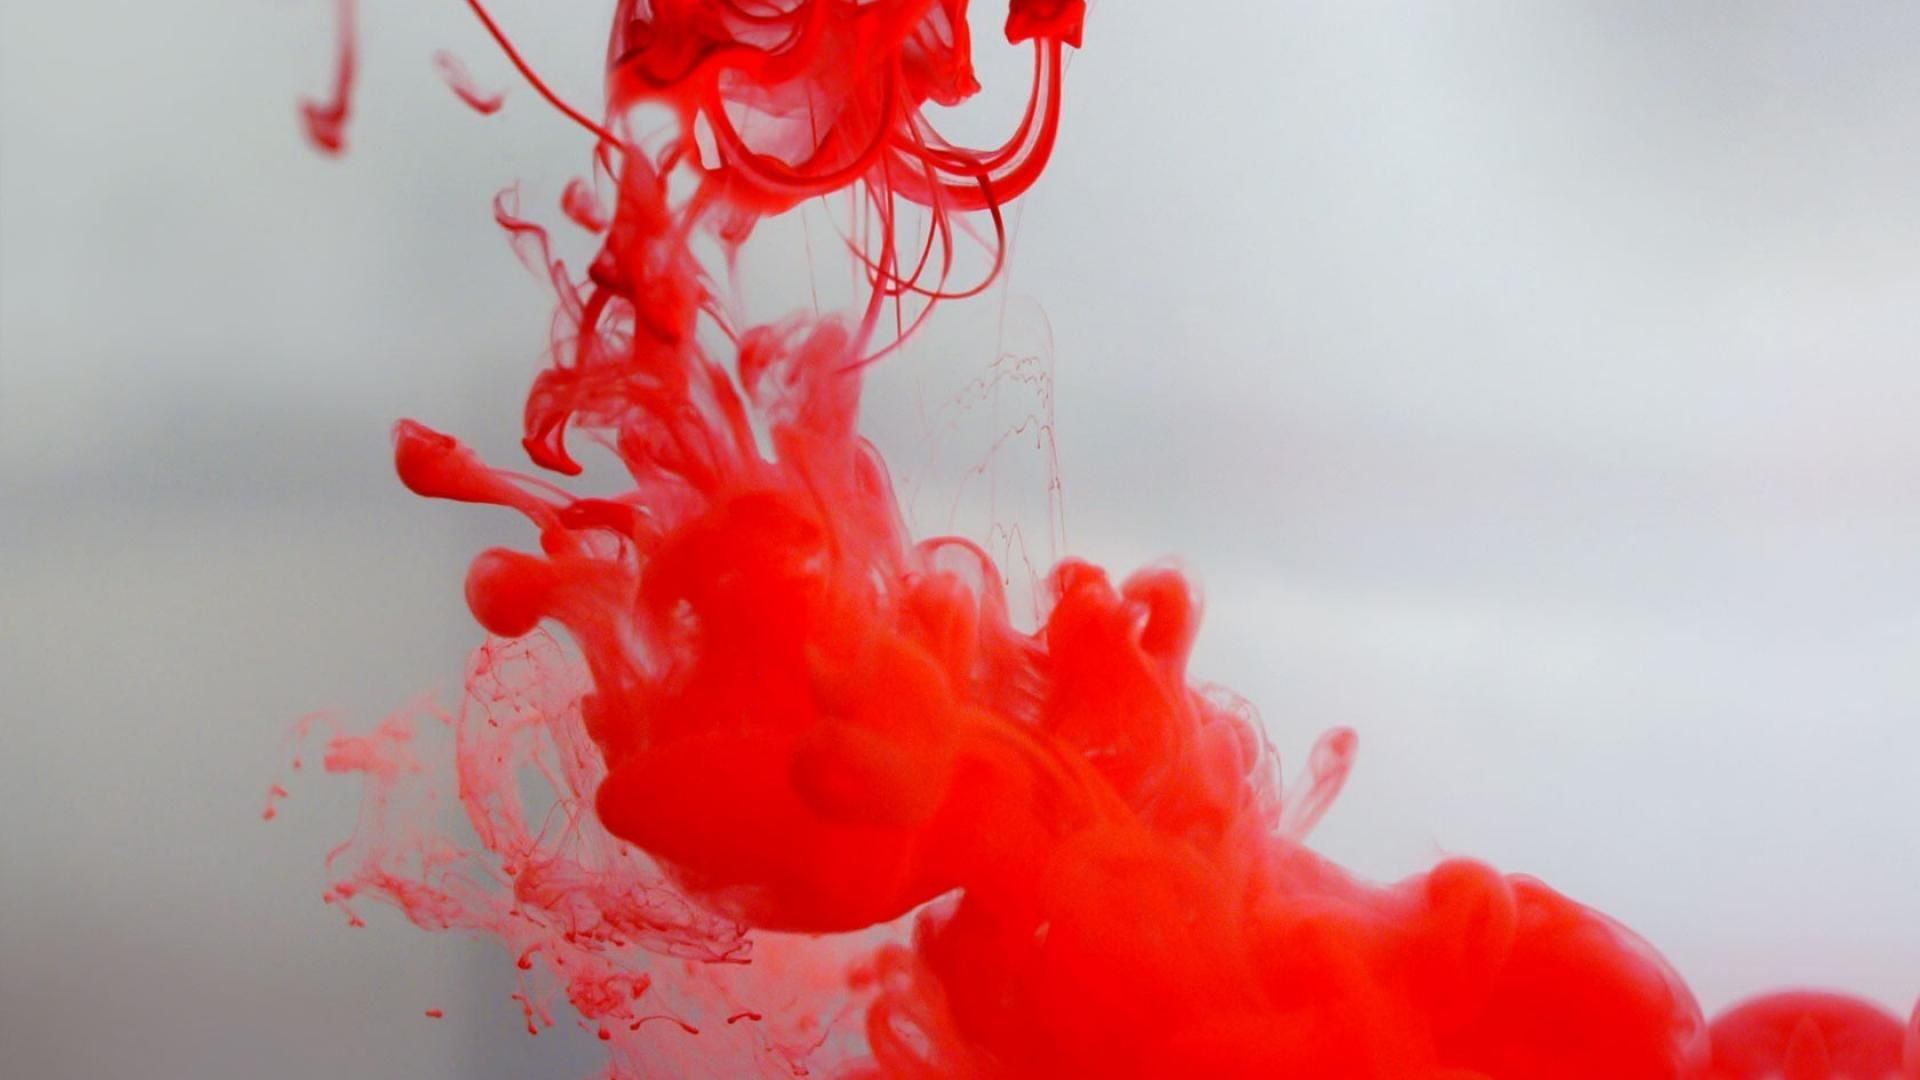 Liquid Abstract Wallpapers Top Free Liquid Abstract